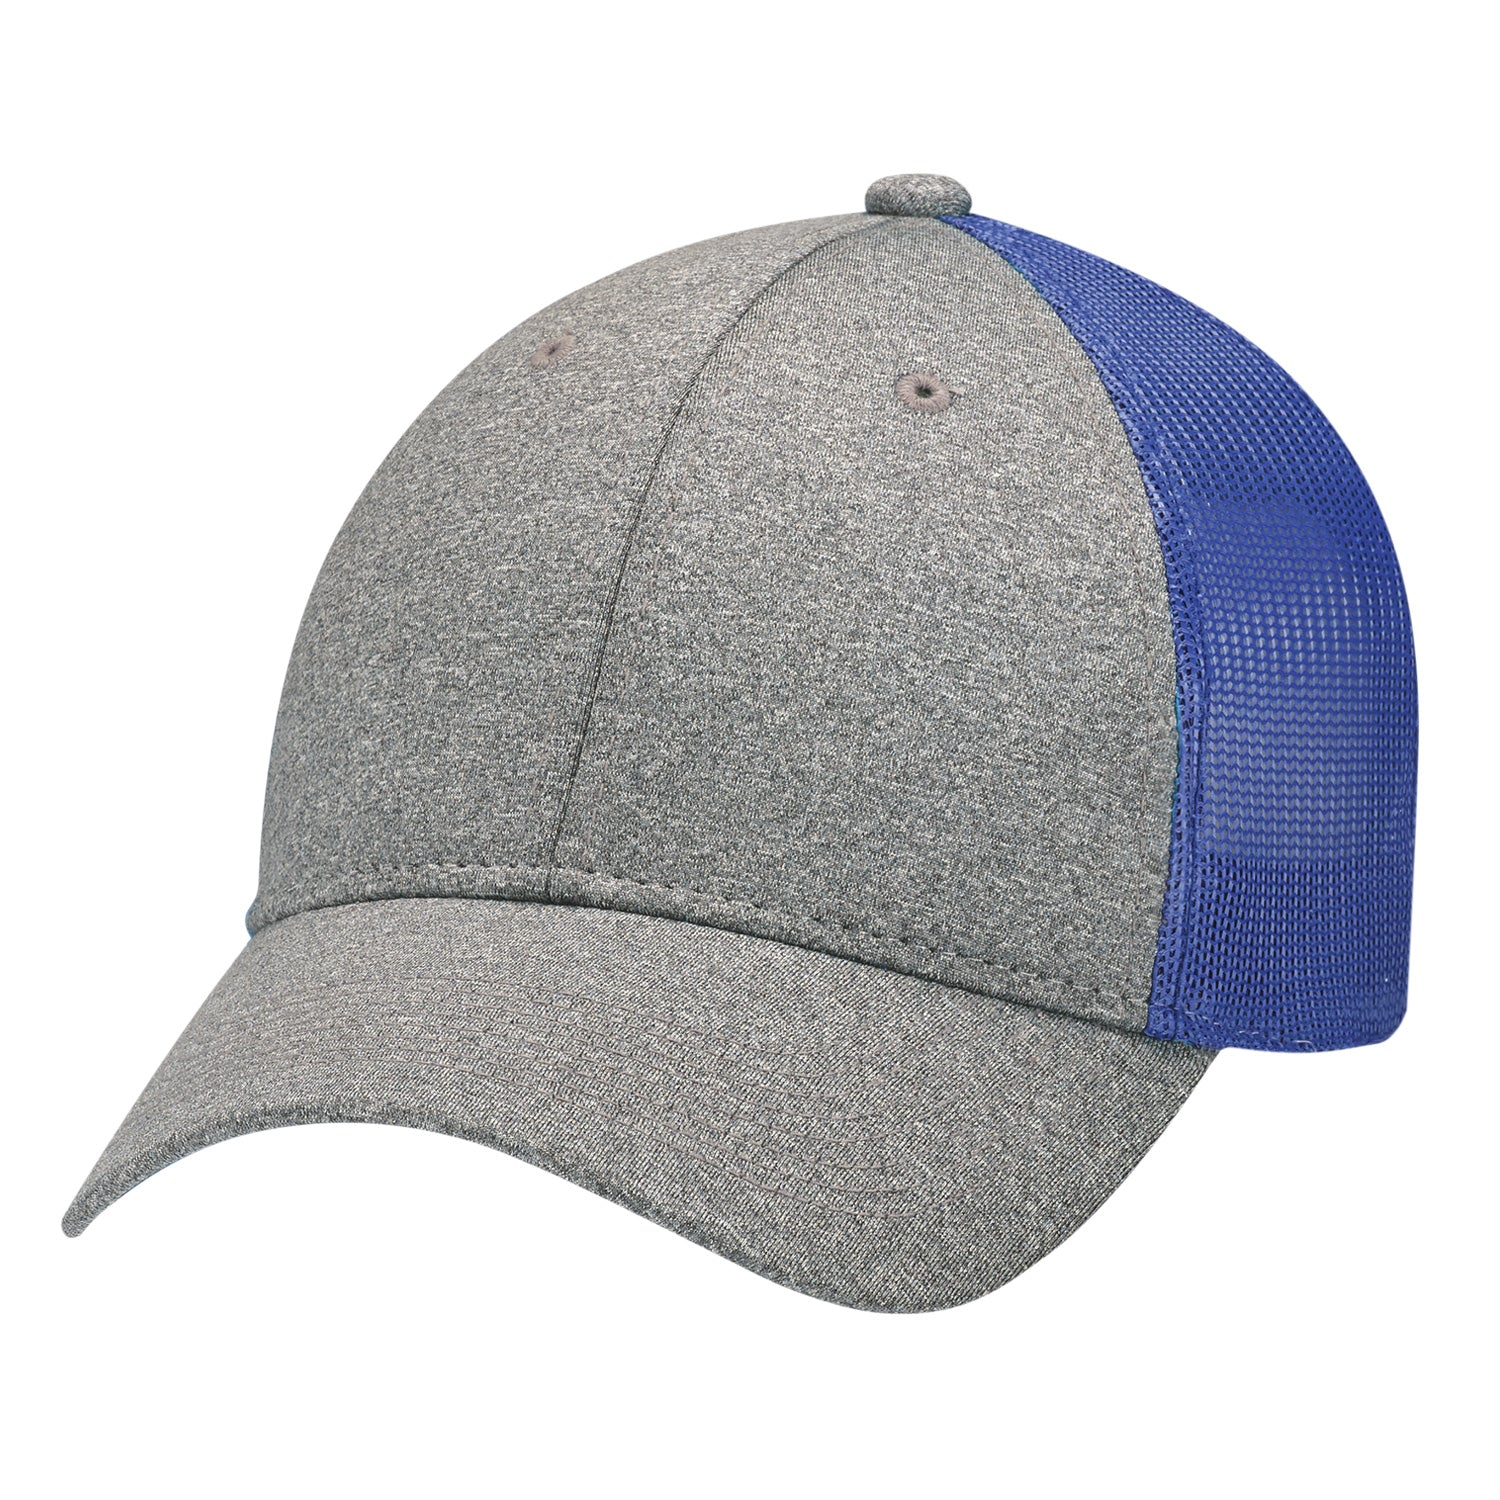 AJM POLY HEATHER NYLON MESH CAP